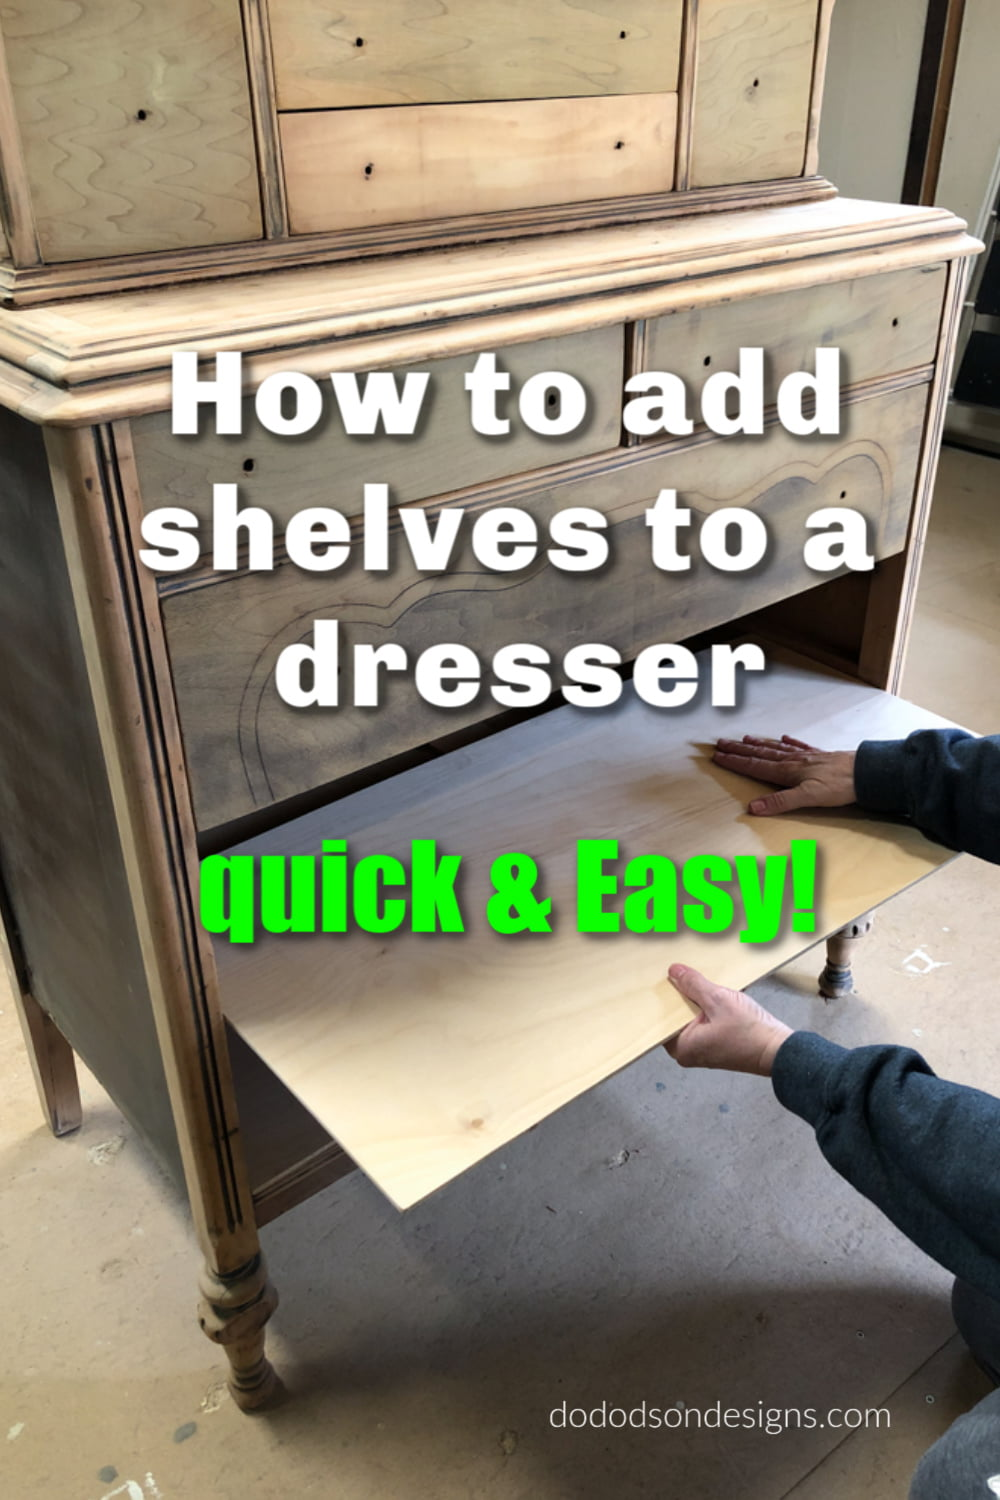 After learning how to add shelves to a dresser, those curbside finds gave a new meaning to furniture flipping the quick & easy way.